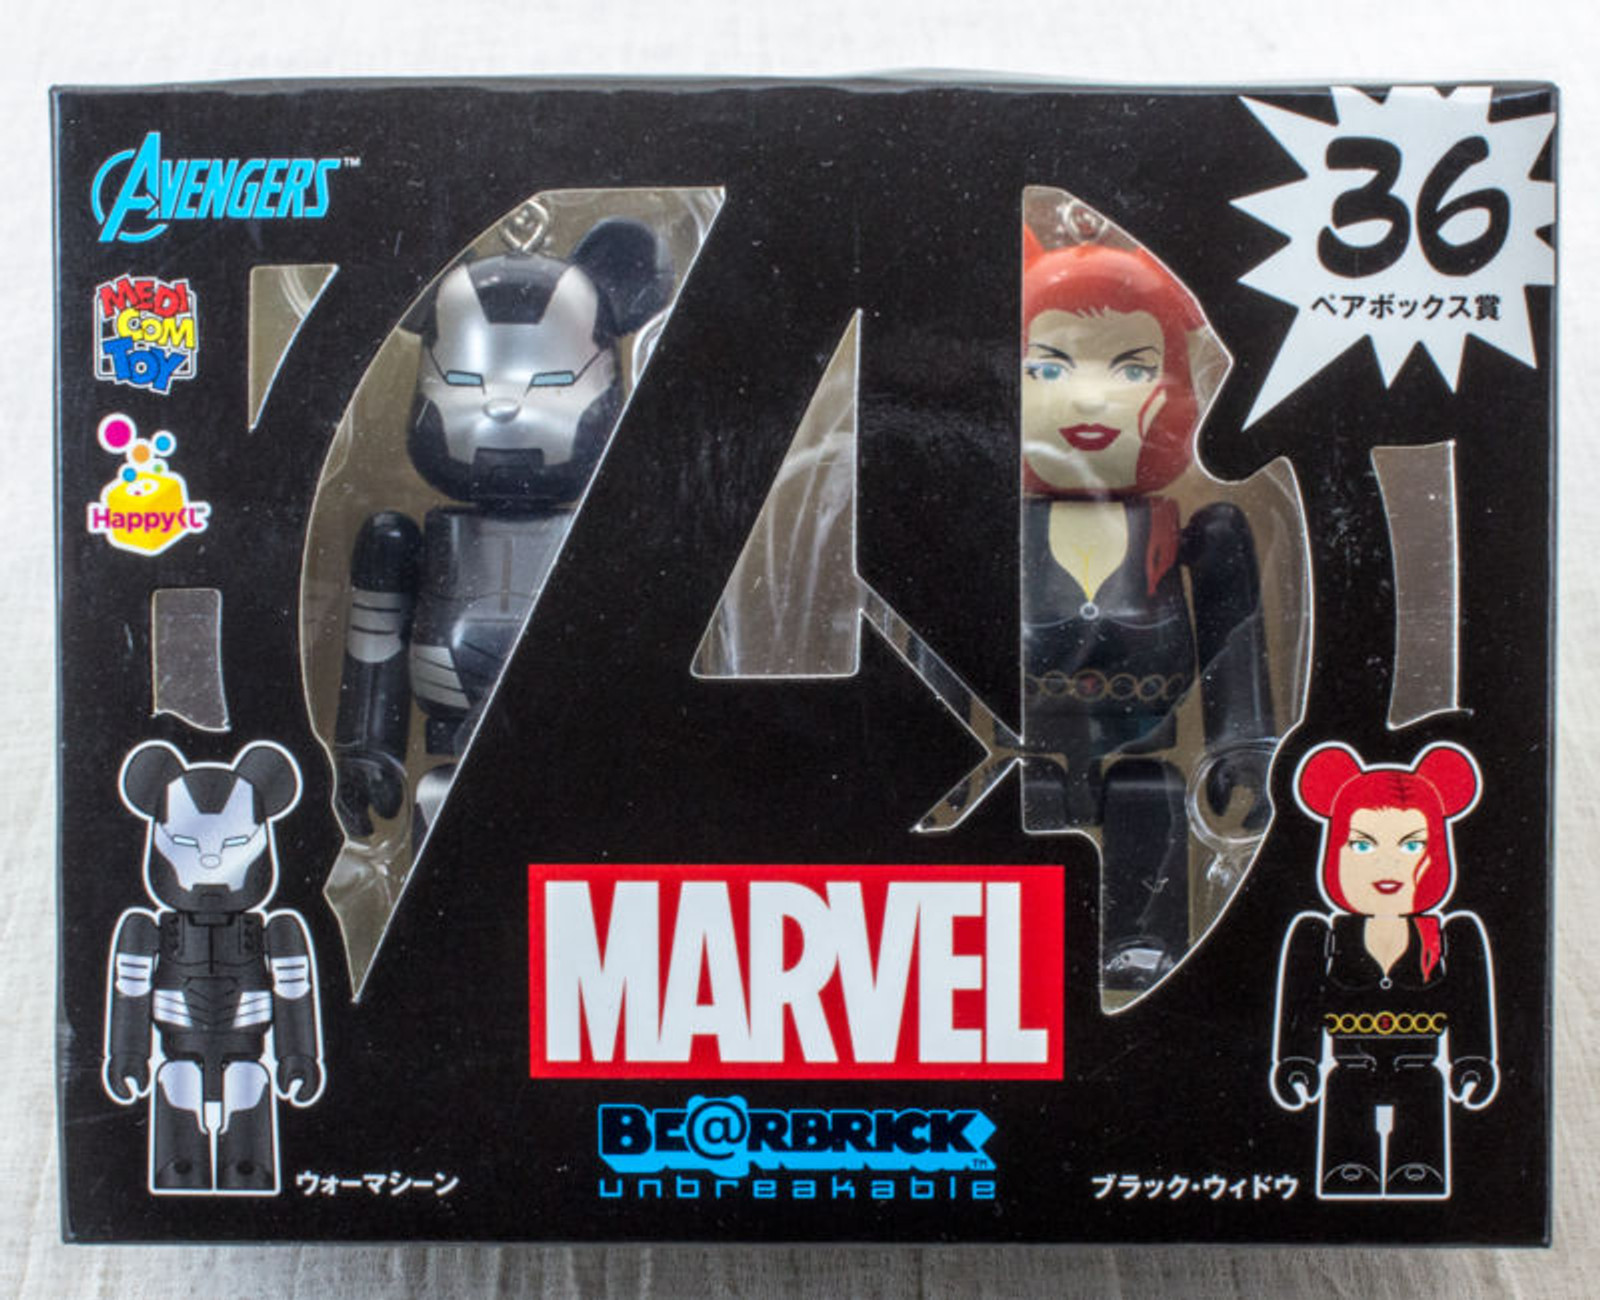 MARVEL Avengers War Machine Black Widow Be@rbrick Figure Medicom JAPAN